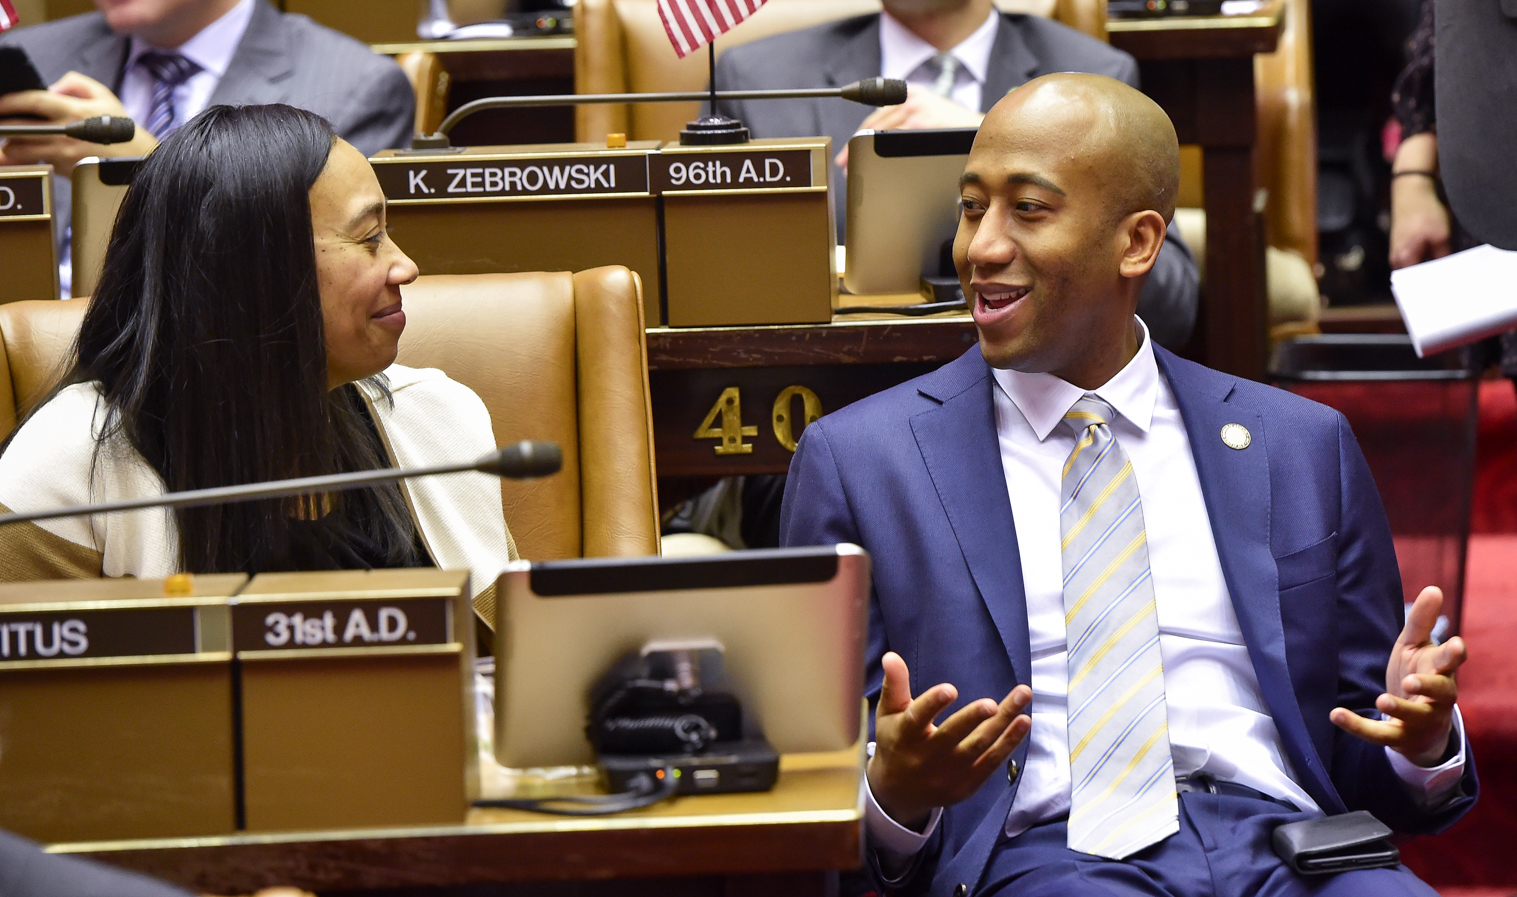 Assembly member Vanel Speaking with Assemblywomen Michele Titus.